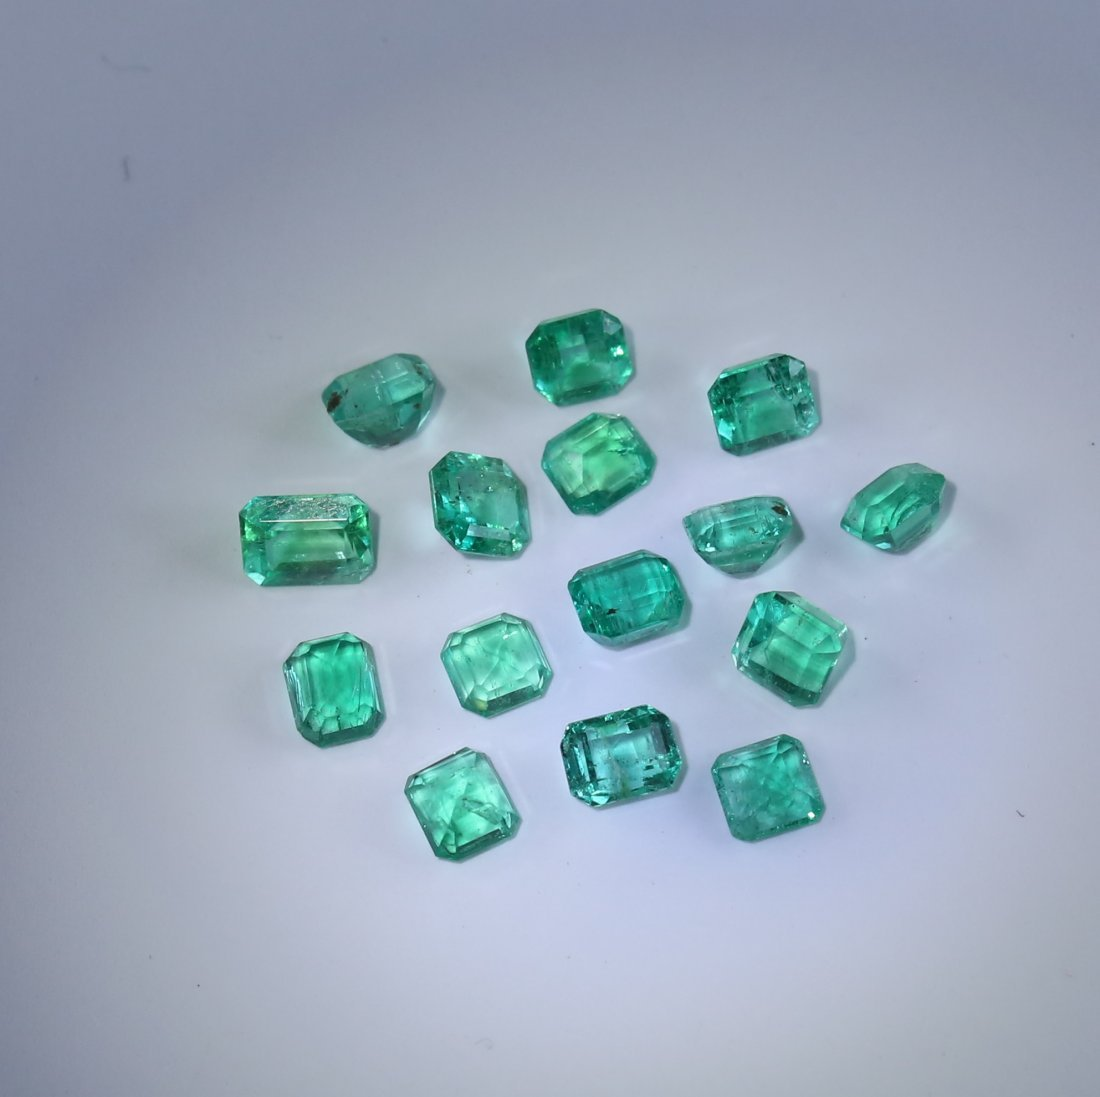 4.16 ct. Emerald Lot - COLOMBIA - 6